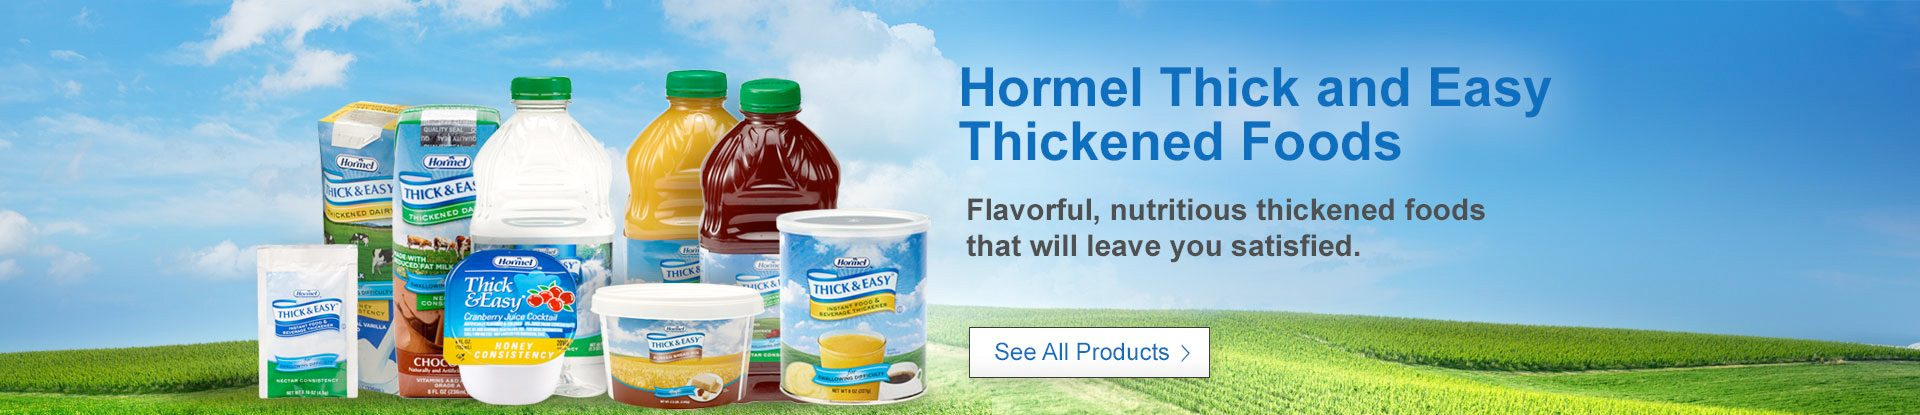 Hormel Thick & Easy Thickened Foods & Beverages